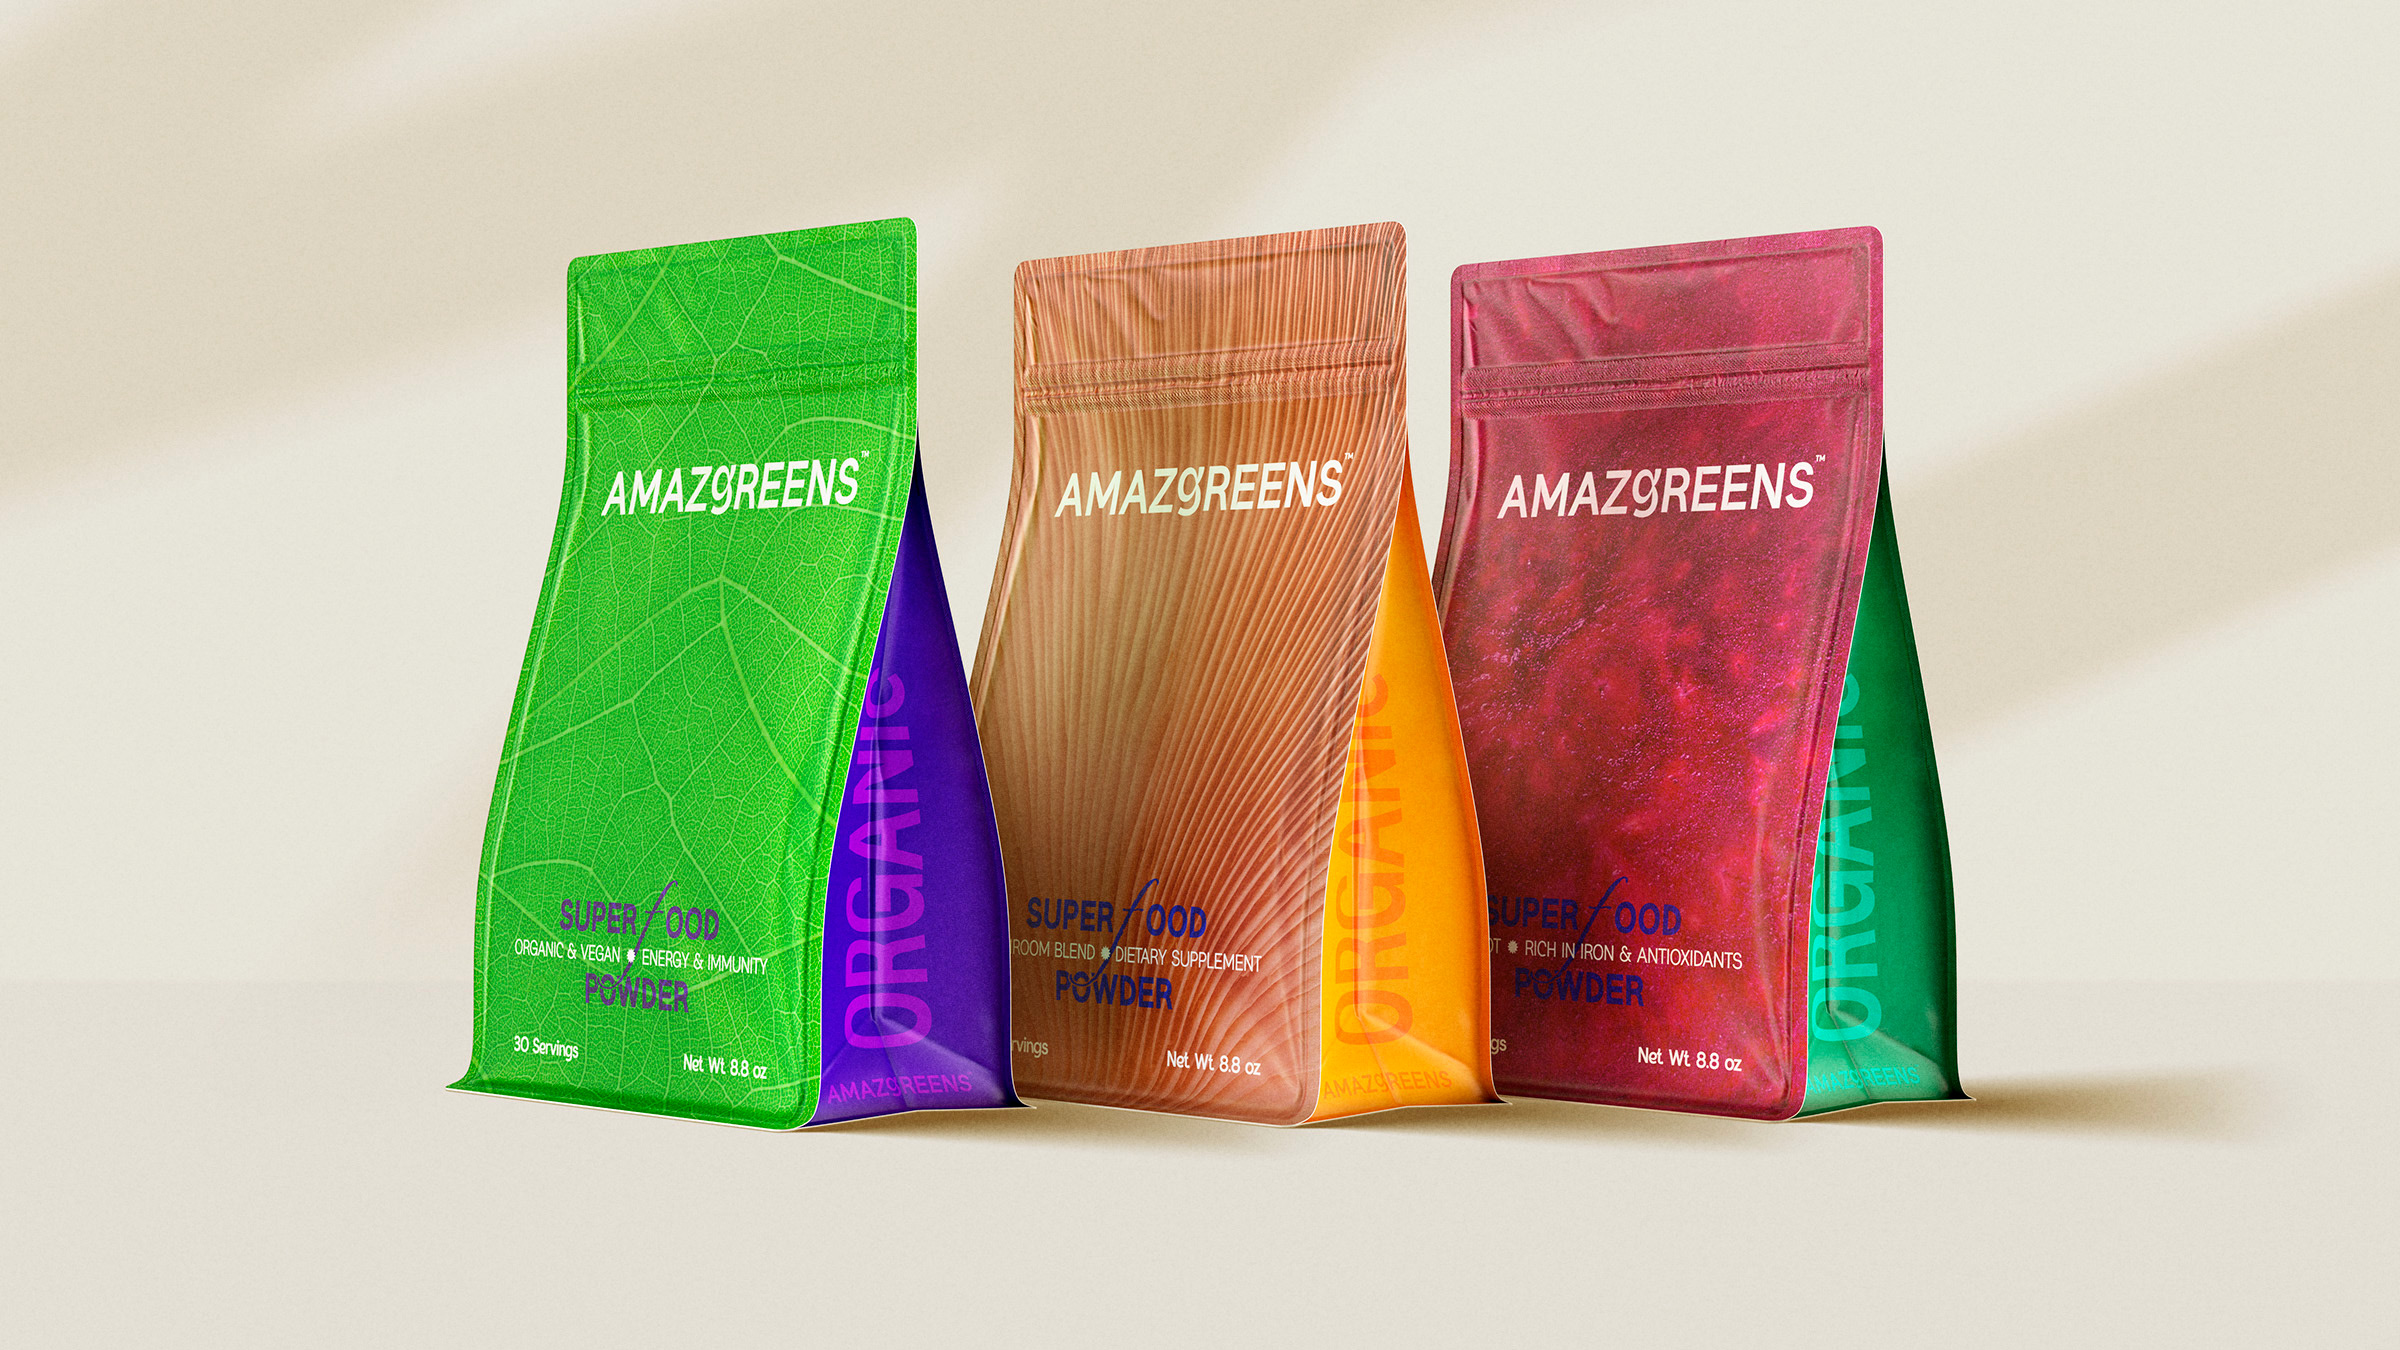 C.Carbon Creates the Packaging Design for Superfoods Brand